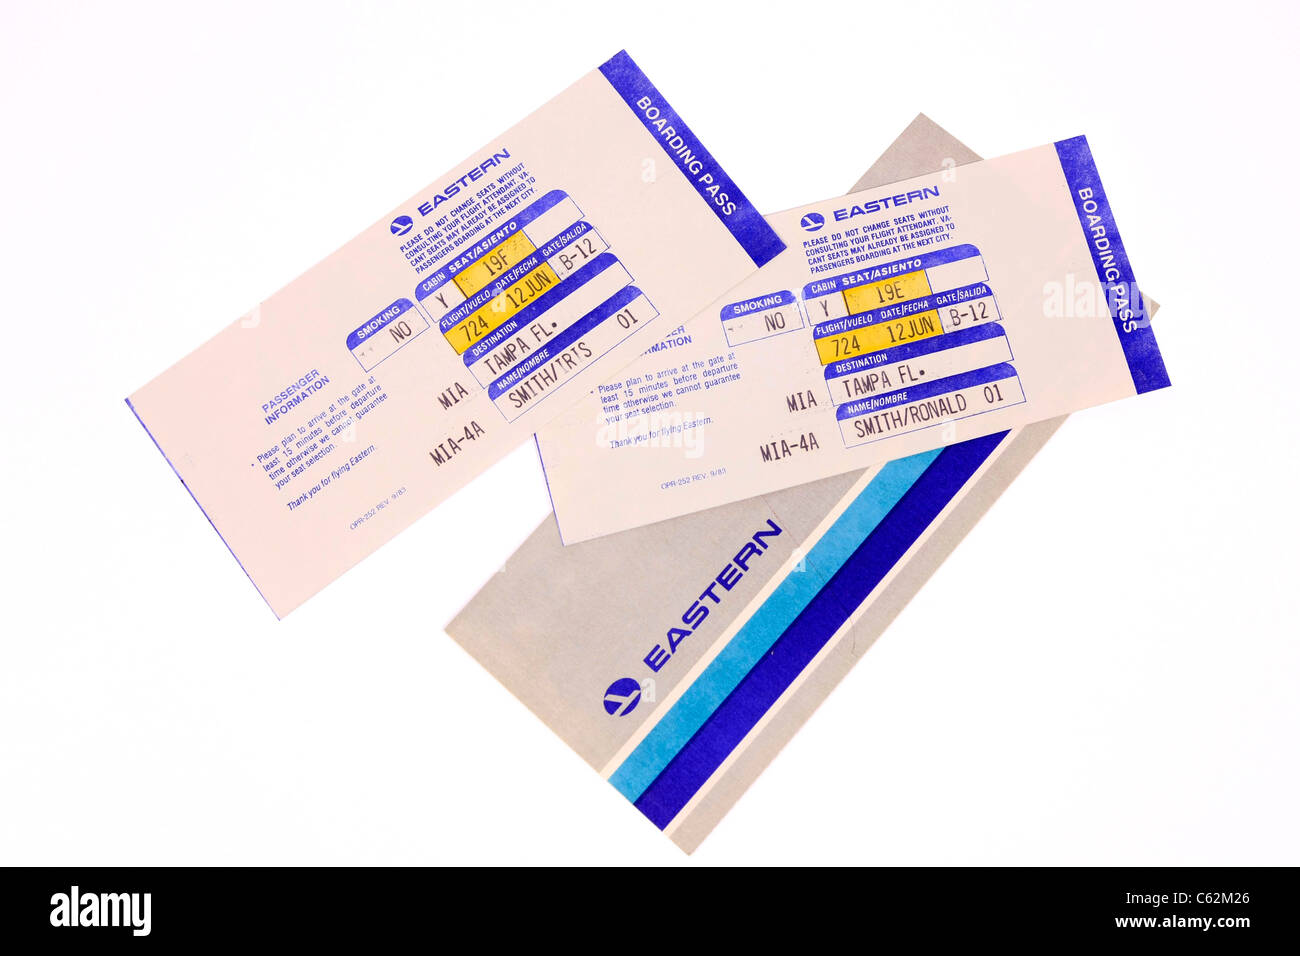 American Eastern Airlines Flight tickets and Boarding Passes - Stock Image